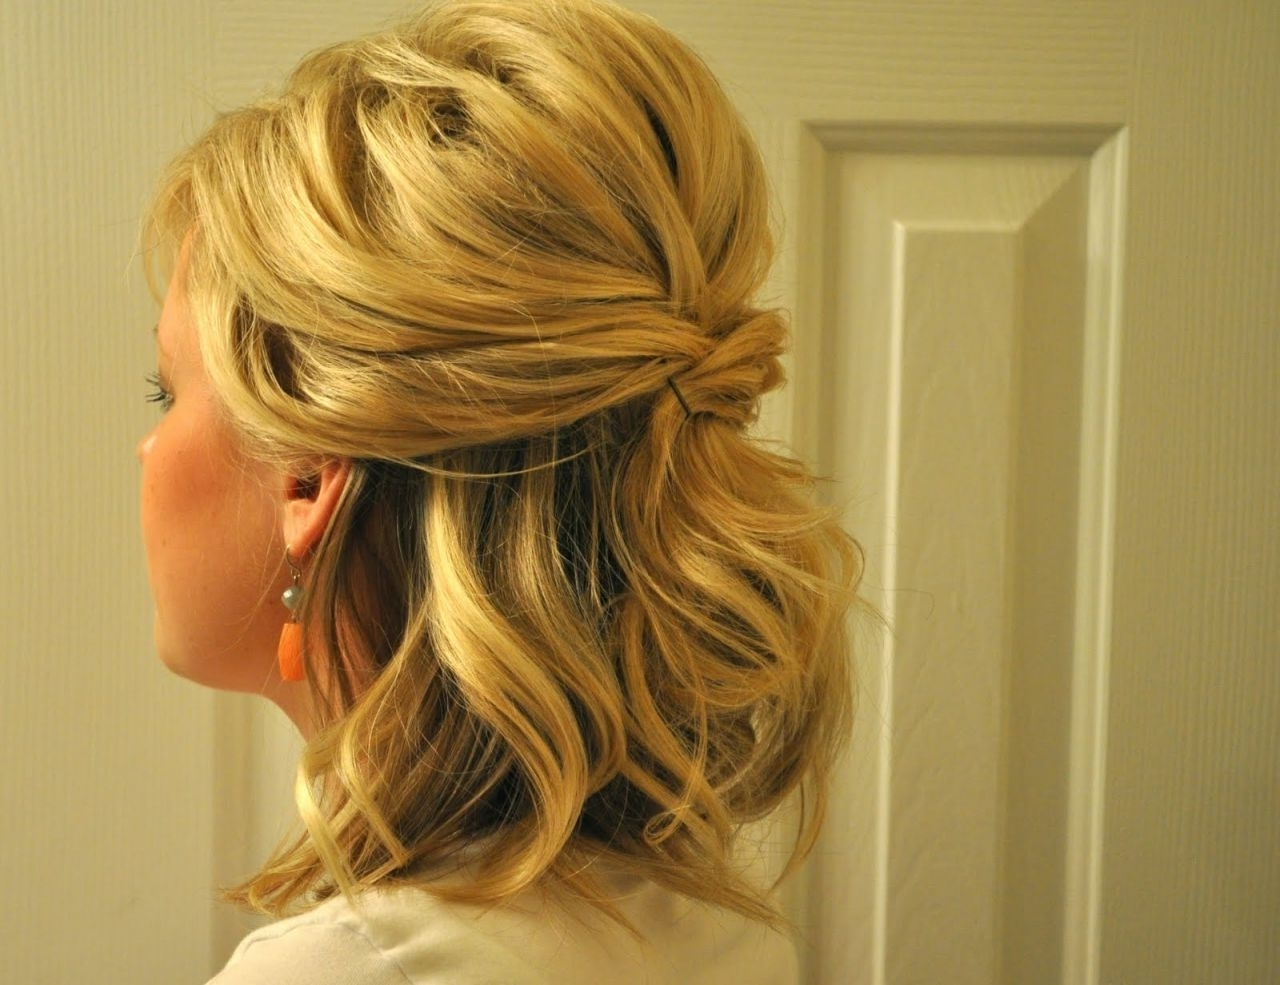 Hairstyles For Curly Hair Half Up Half Down Prom Hairstyles For Pertaining To Most Current Wedding Hairstyles For Medium Length With Blonde Hair (Gallery 12 of 15)